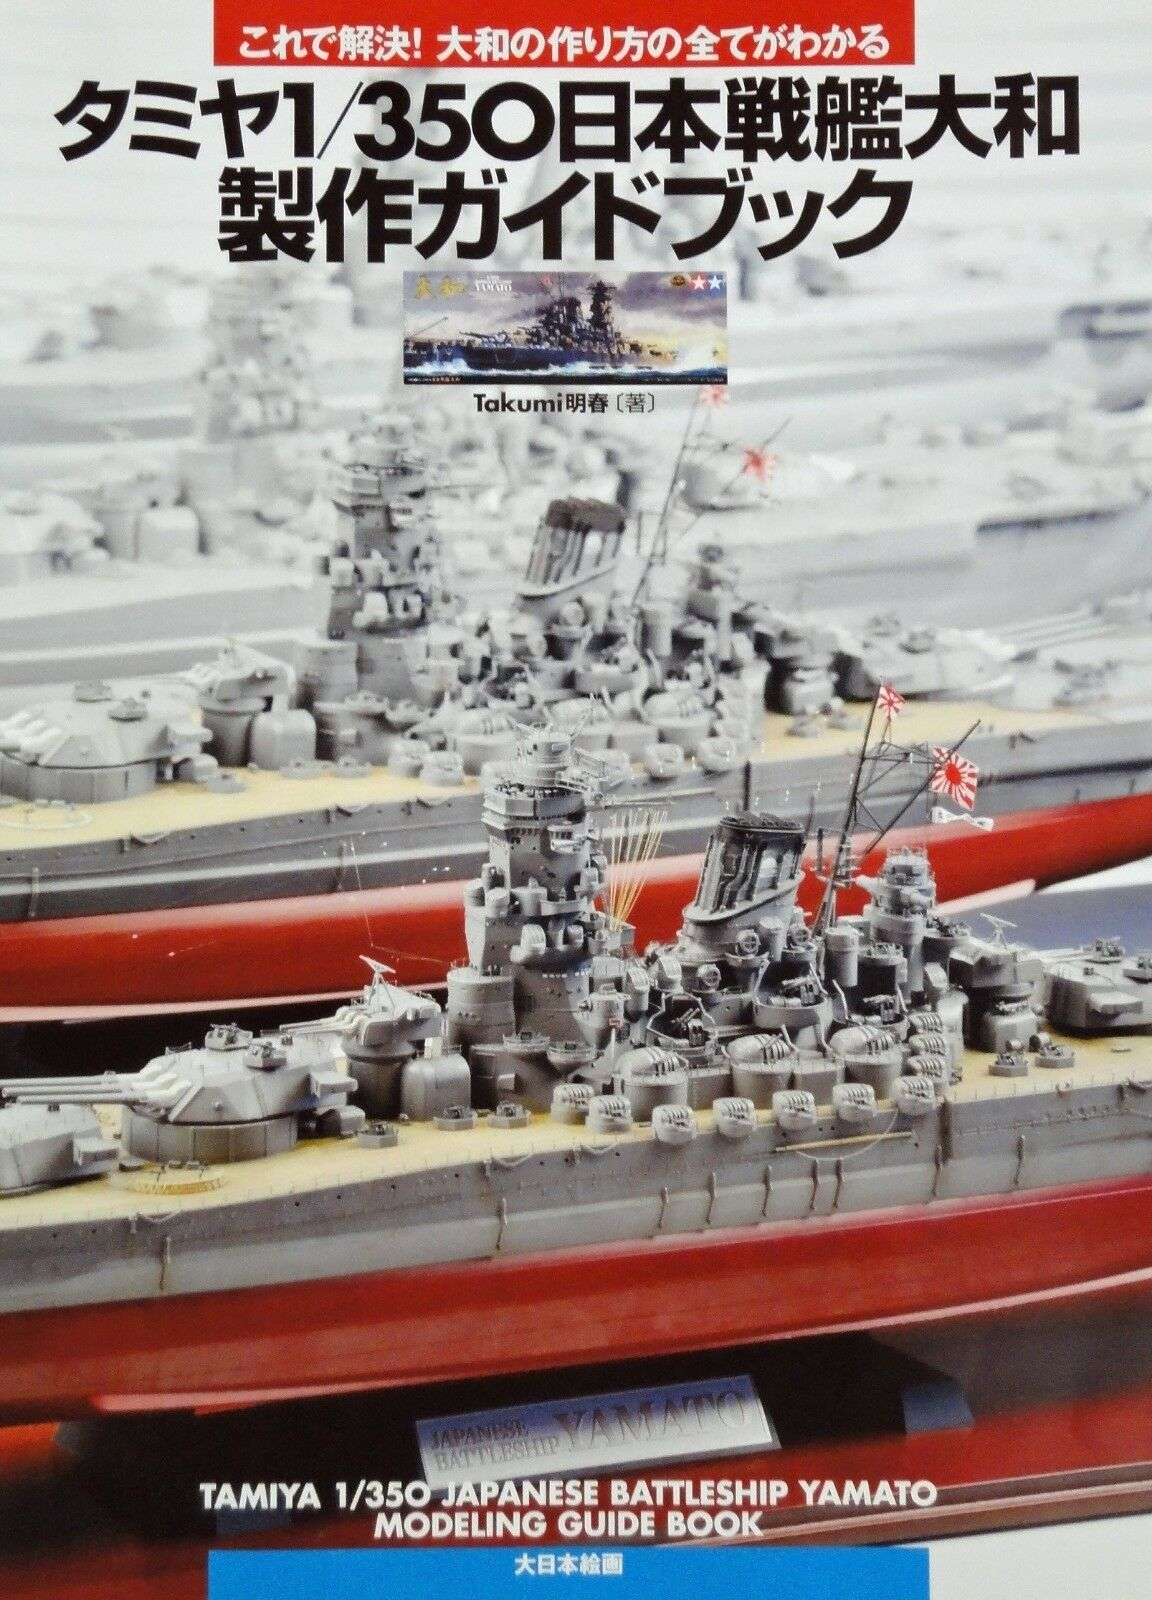 1/350 Tamiya Yamato Modeling Guide Book Picturial Book Japan - $140.31